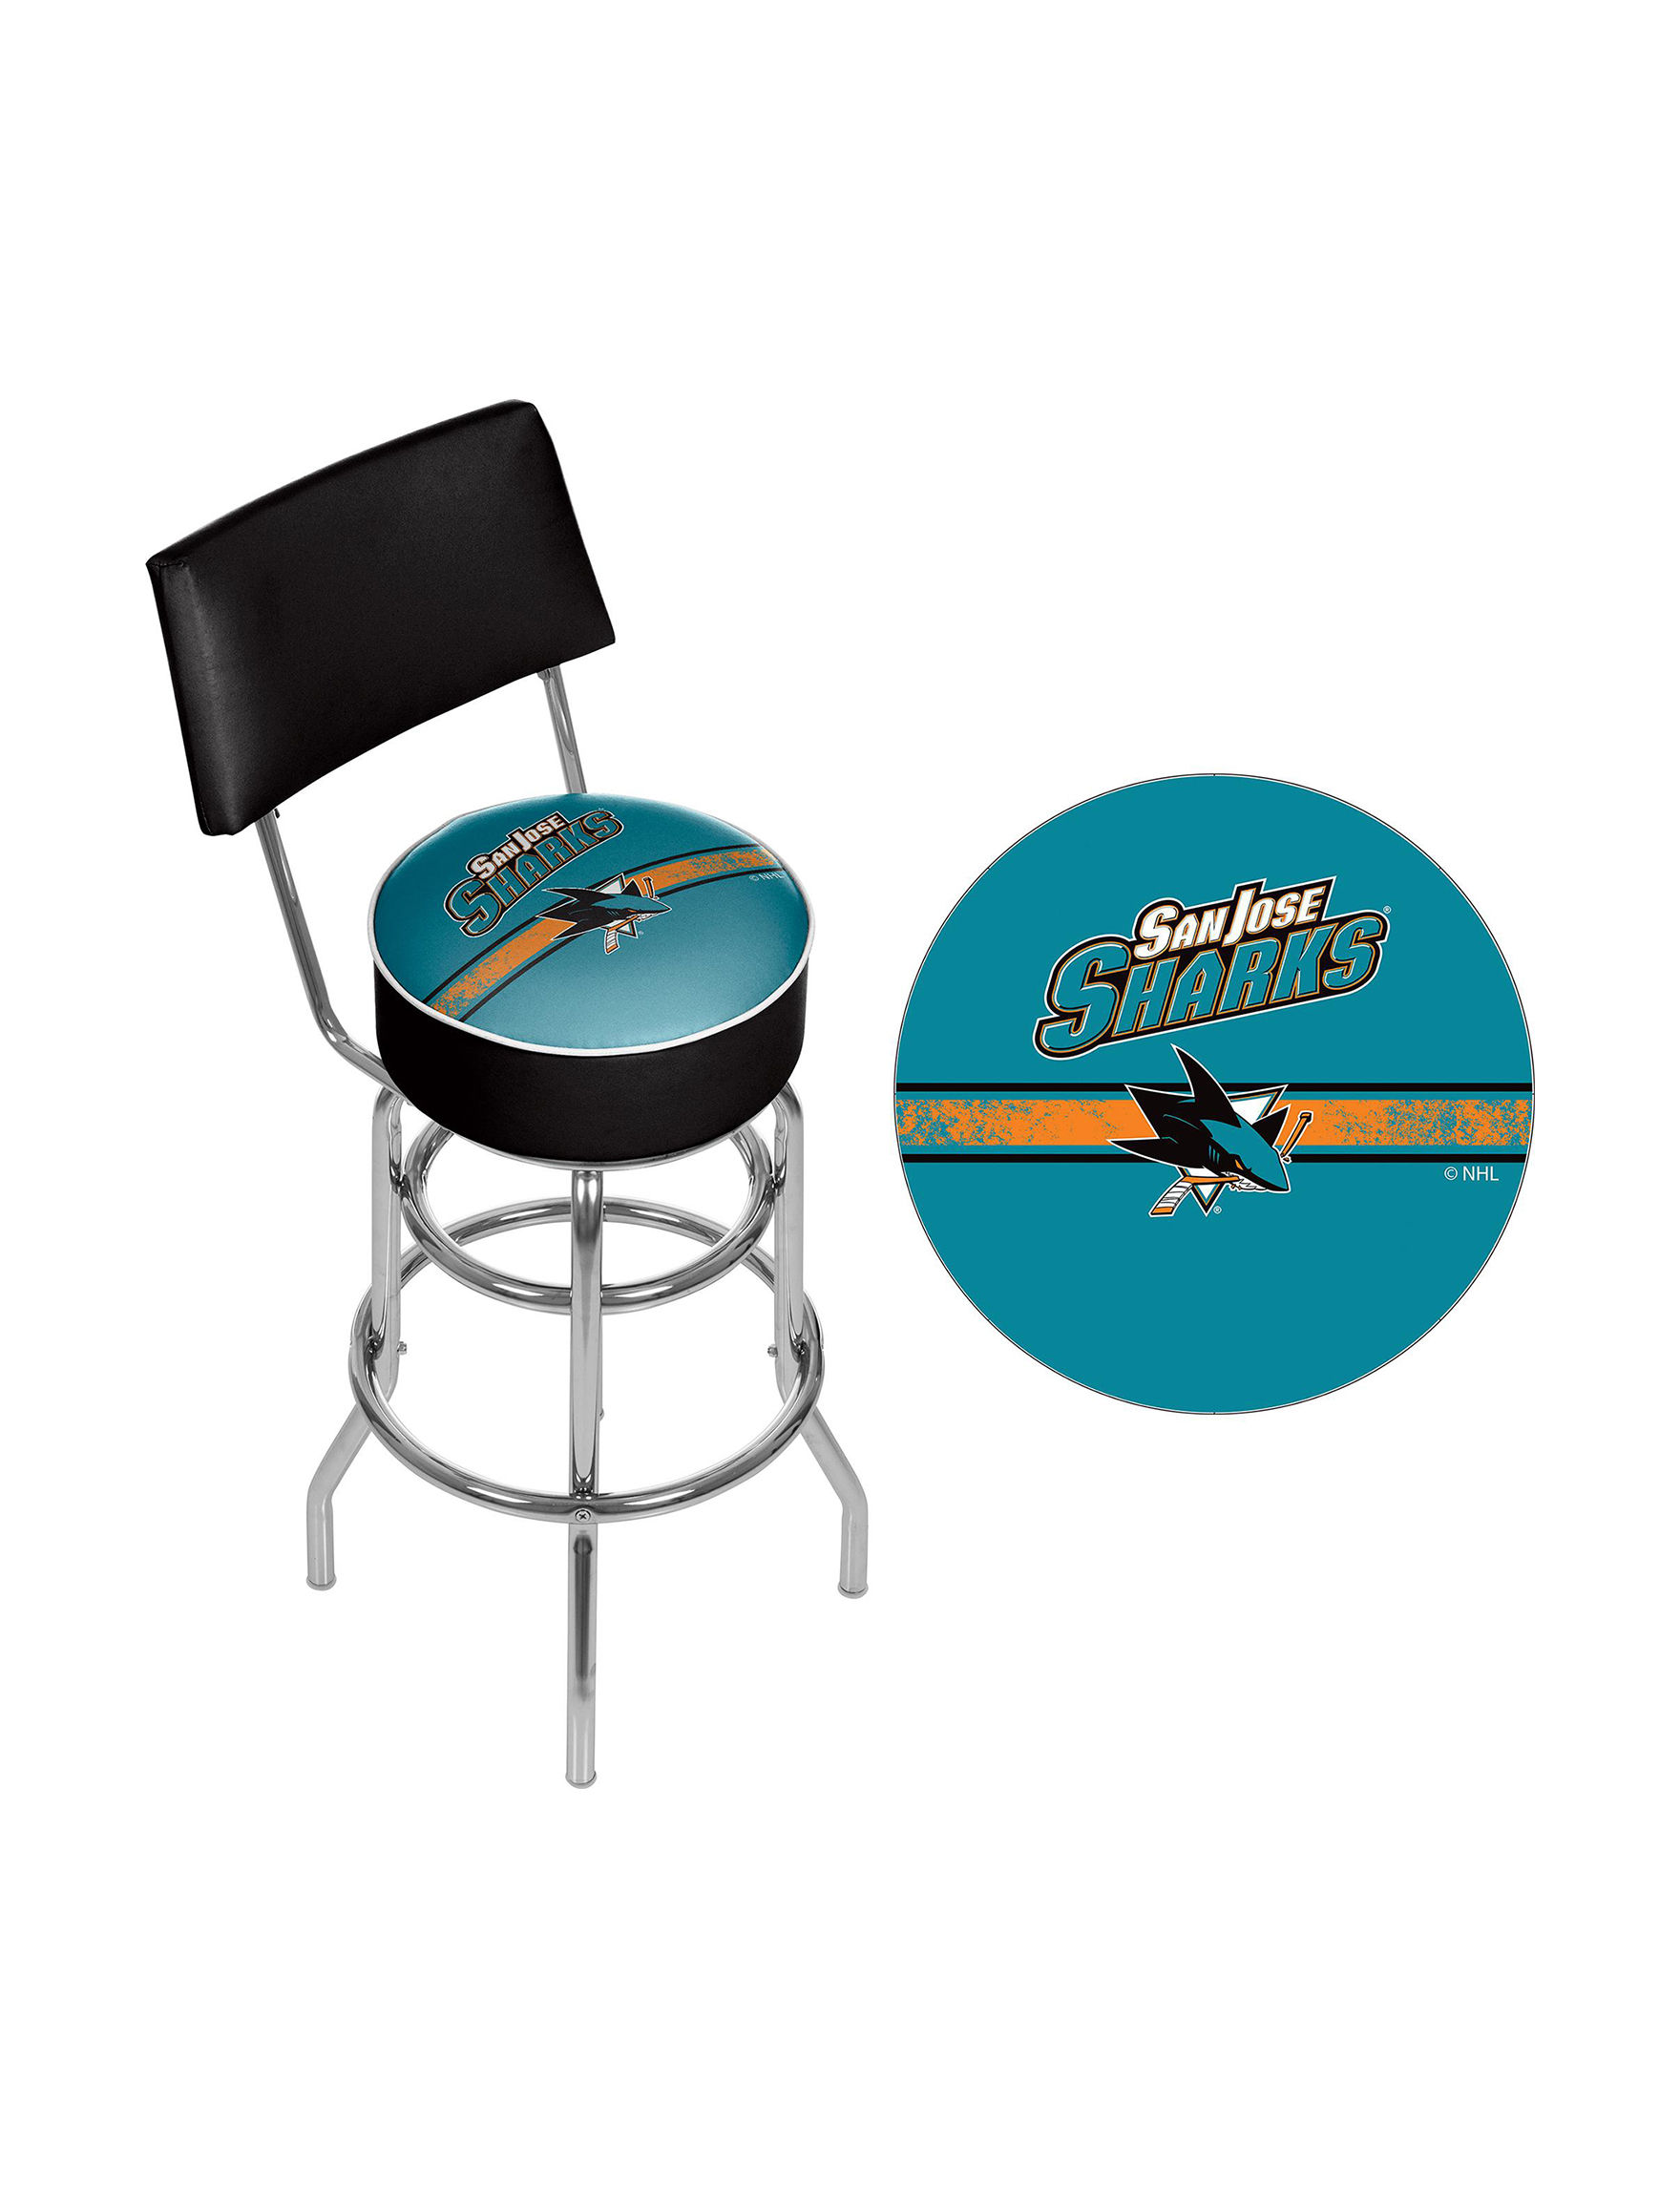 Nhl san jose sharks swivel bar stool with back stage stores